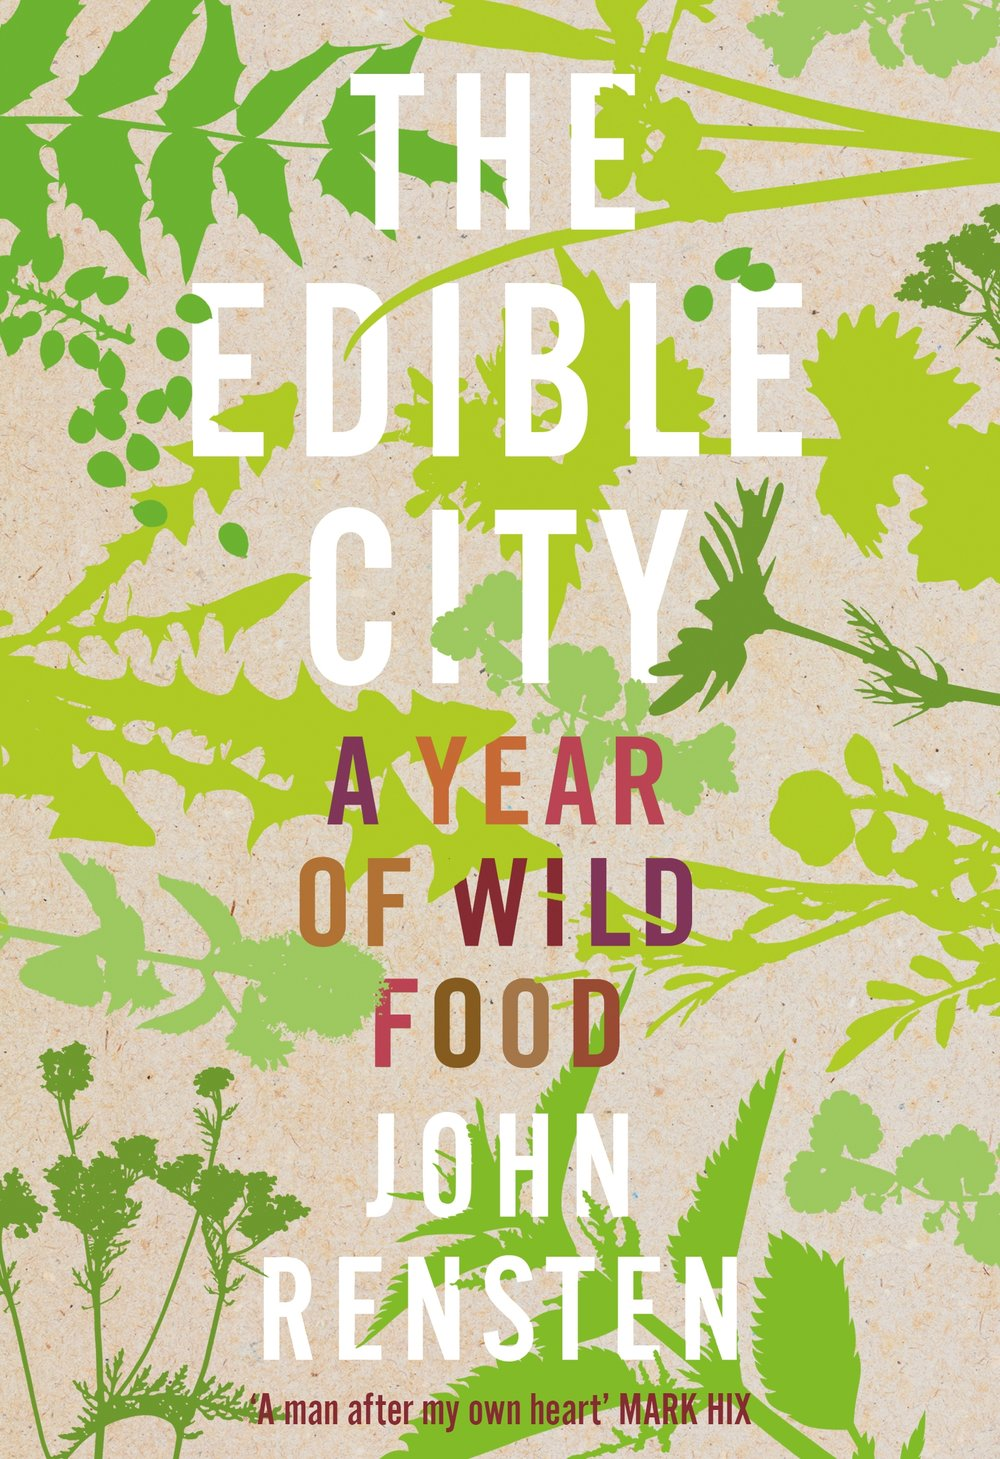 THE EDIBLE CITY     (Boxtree September 2016)